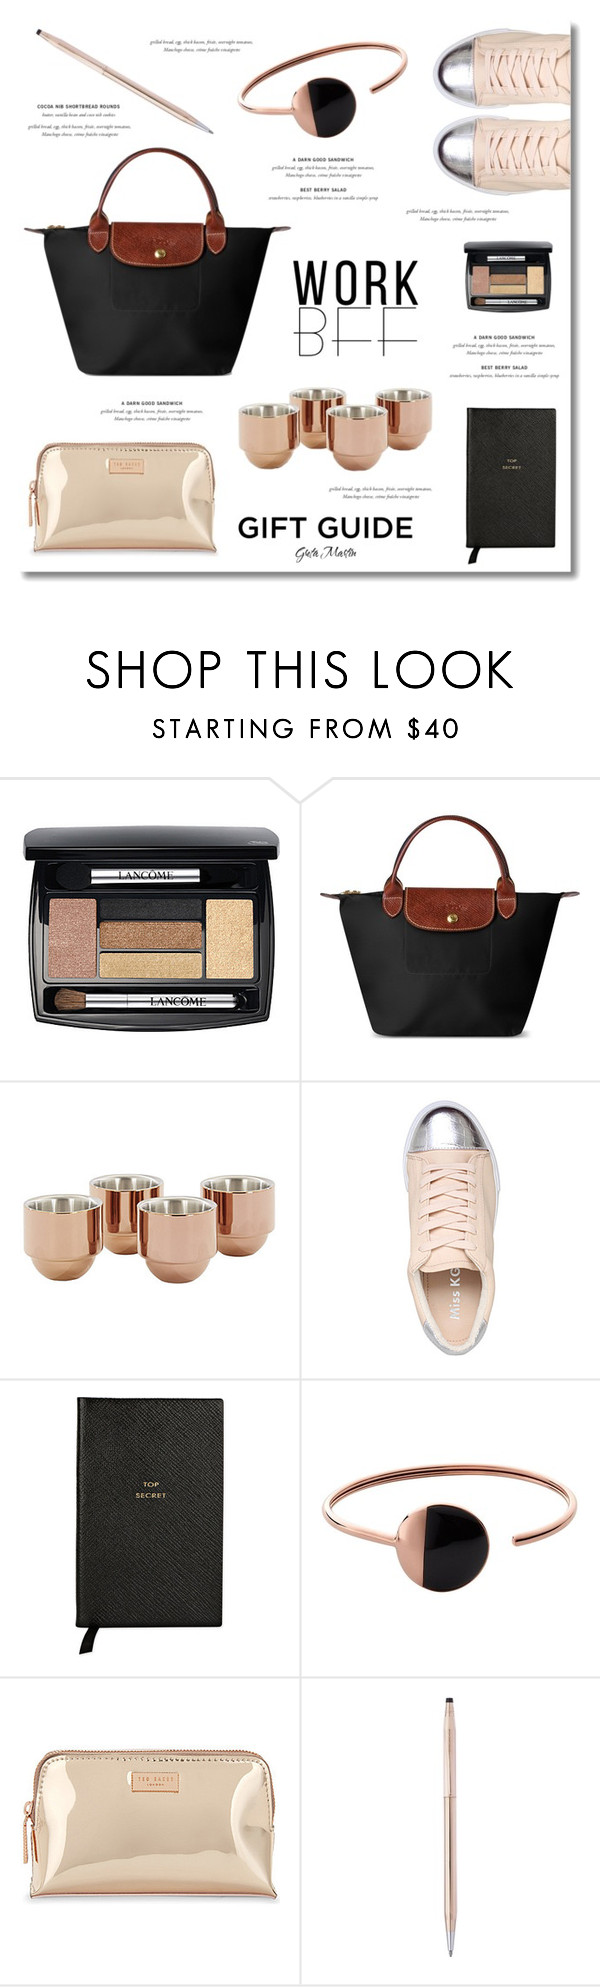 """Gift Guide: Work BFF ... 2016"" by greta-martin ❤ liked on Polyvore featuring Lancôme, Longchamp, Tom Dixon, Miss KG, Smythson, Skagen, Ted Baker, Cross, giftguide and black"